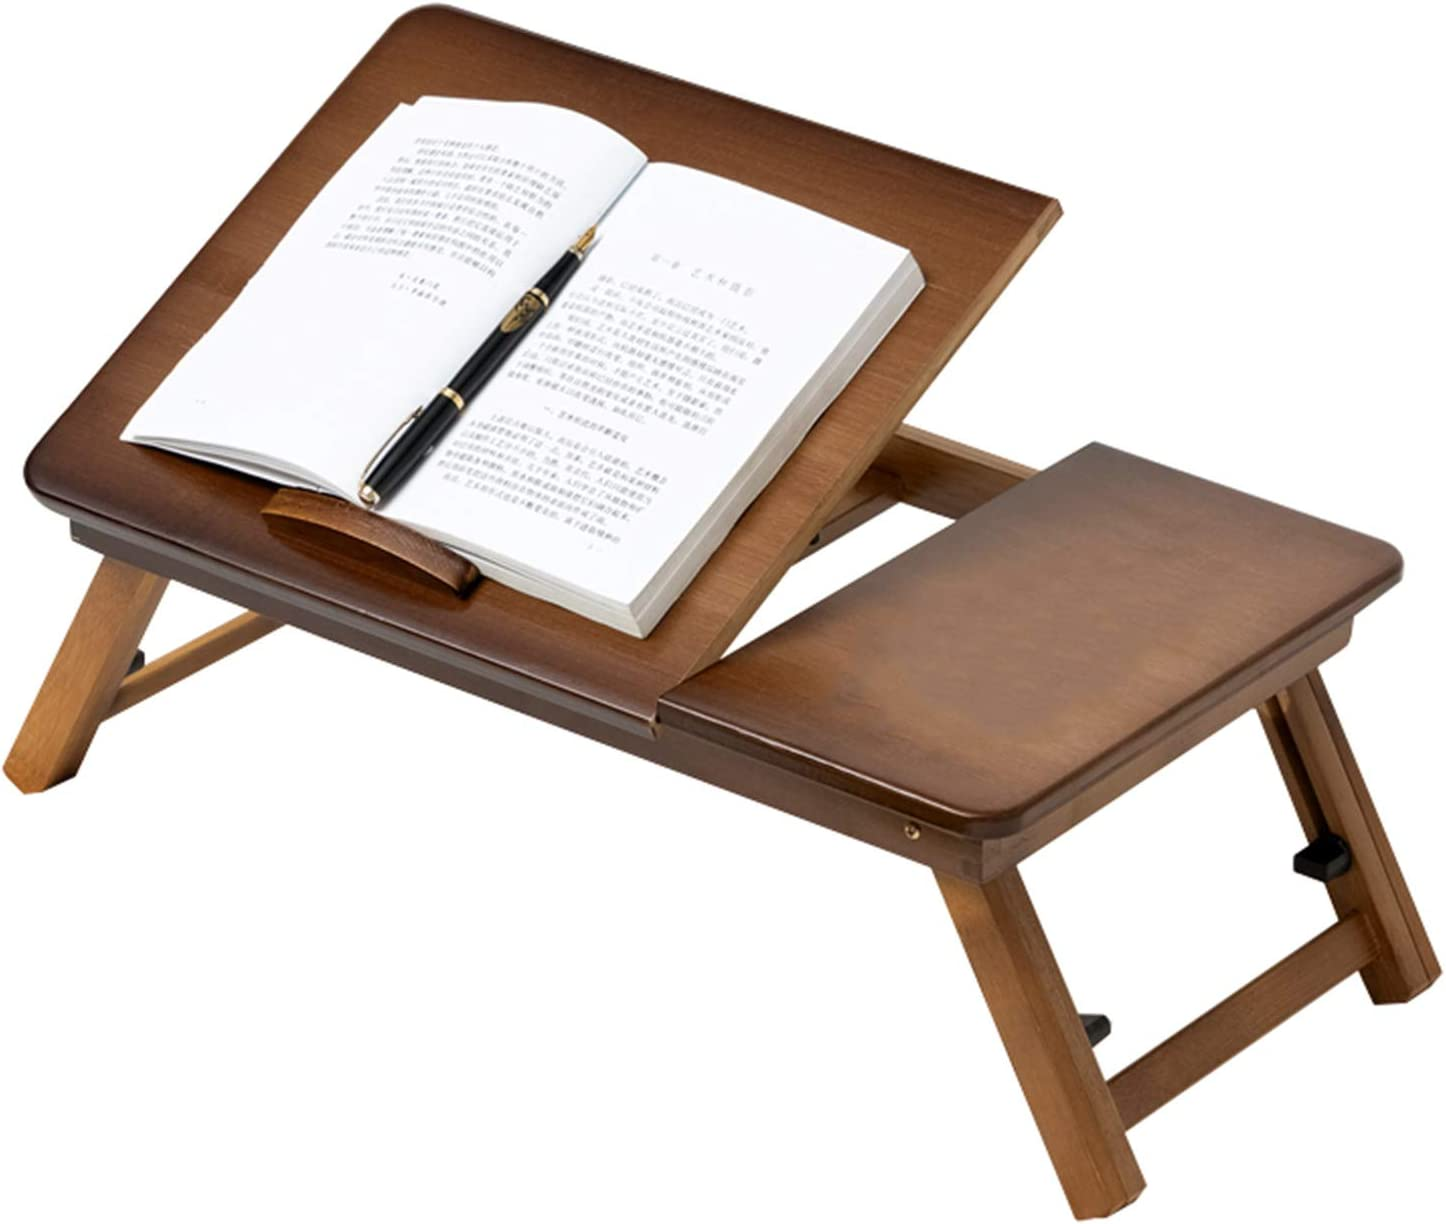 supreme YHMT Laptop Bed shipfree Tray Table Ta Bamboo Foldable Smartphone